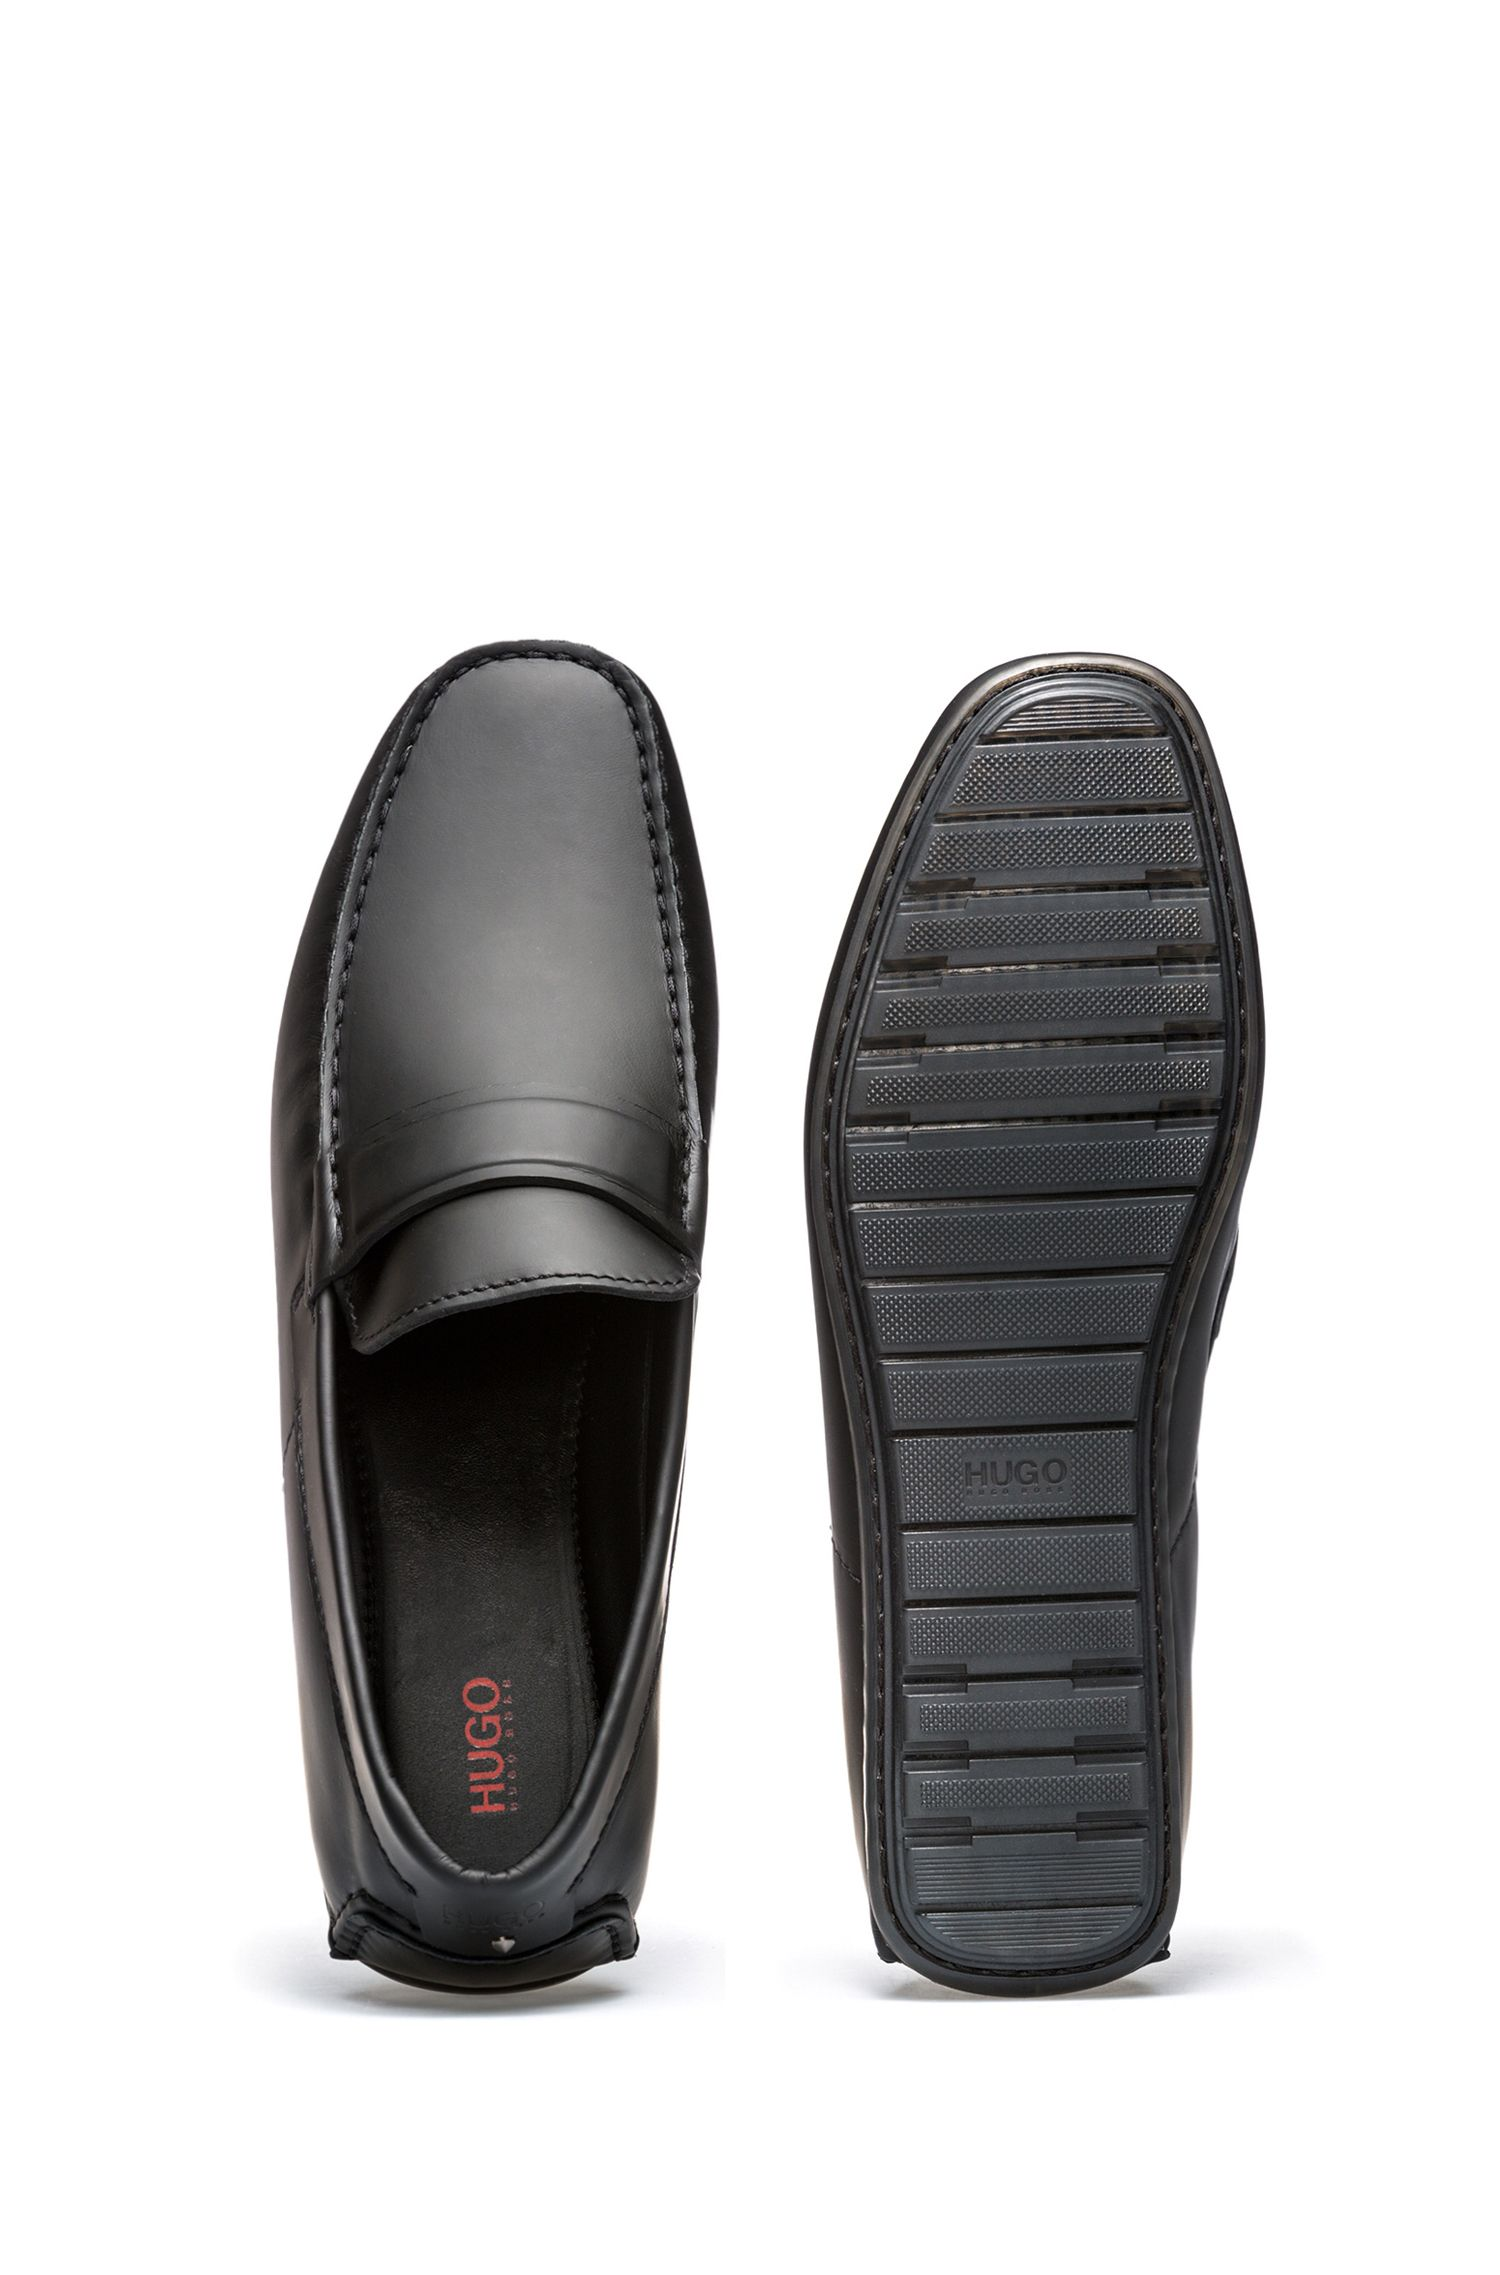 Leather moccasins with rubber outsole